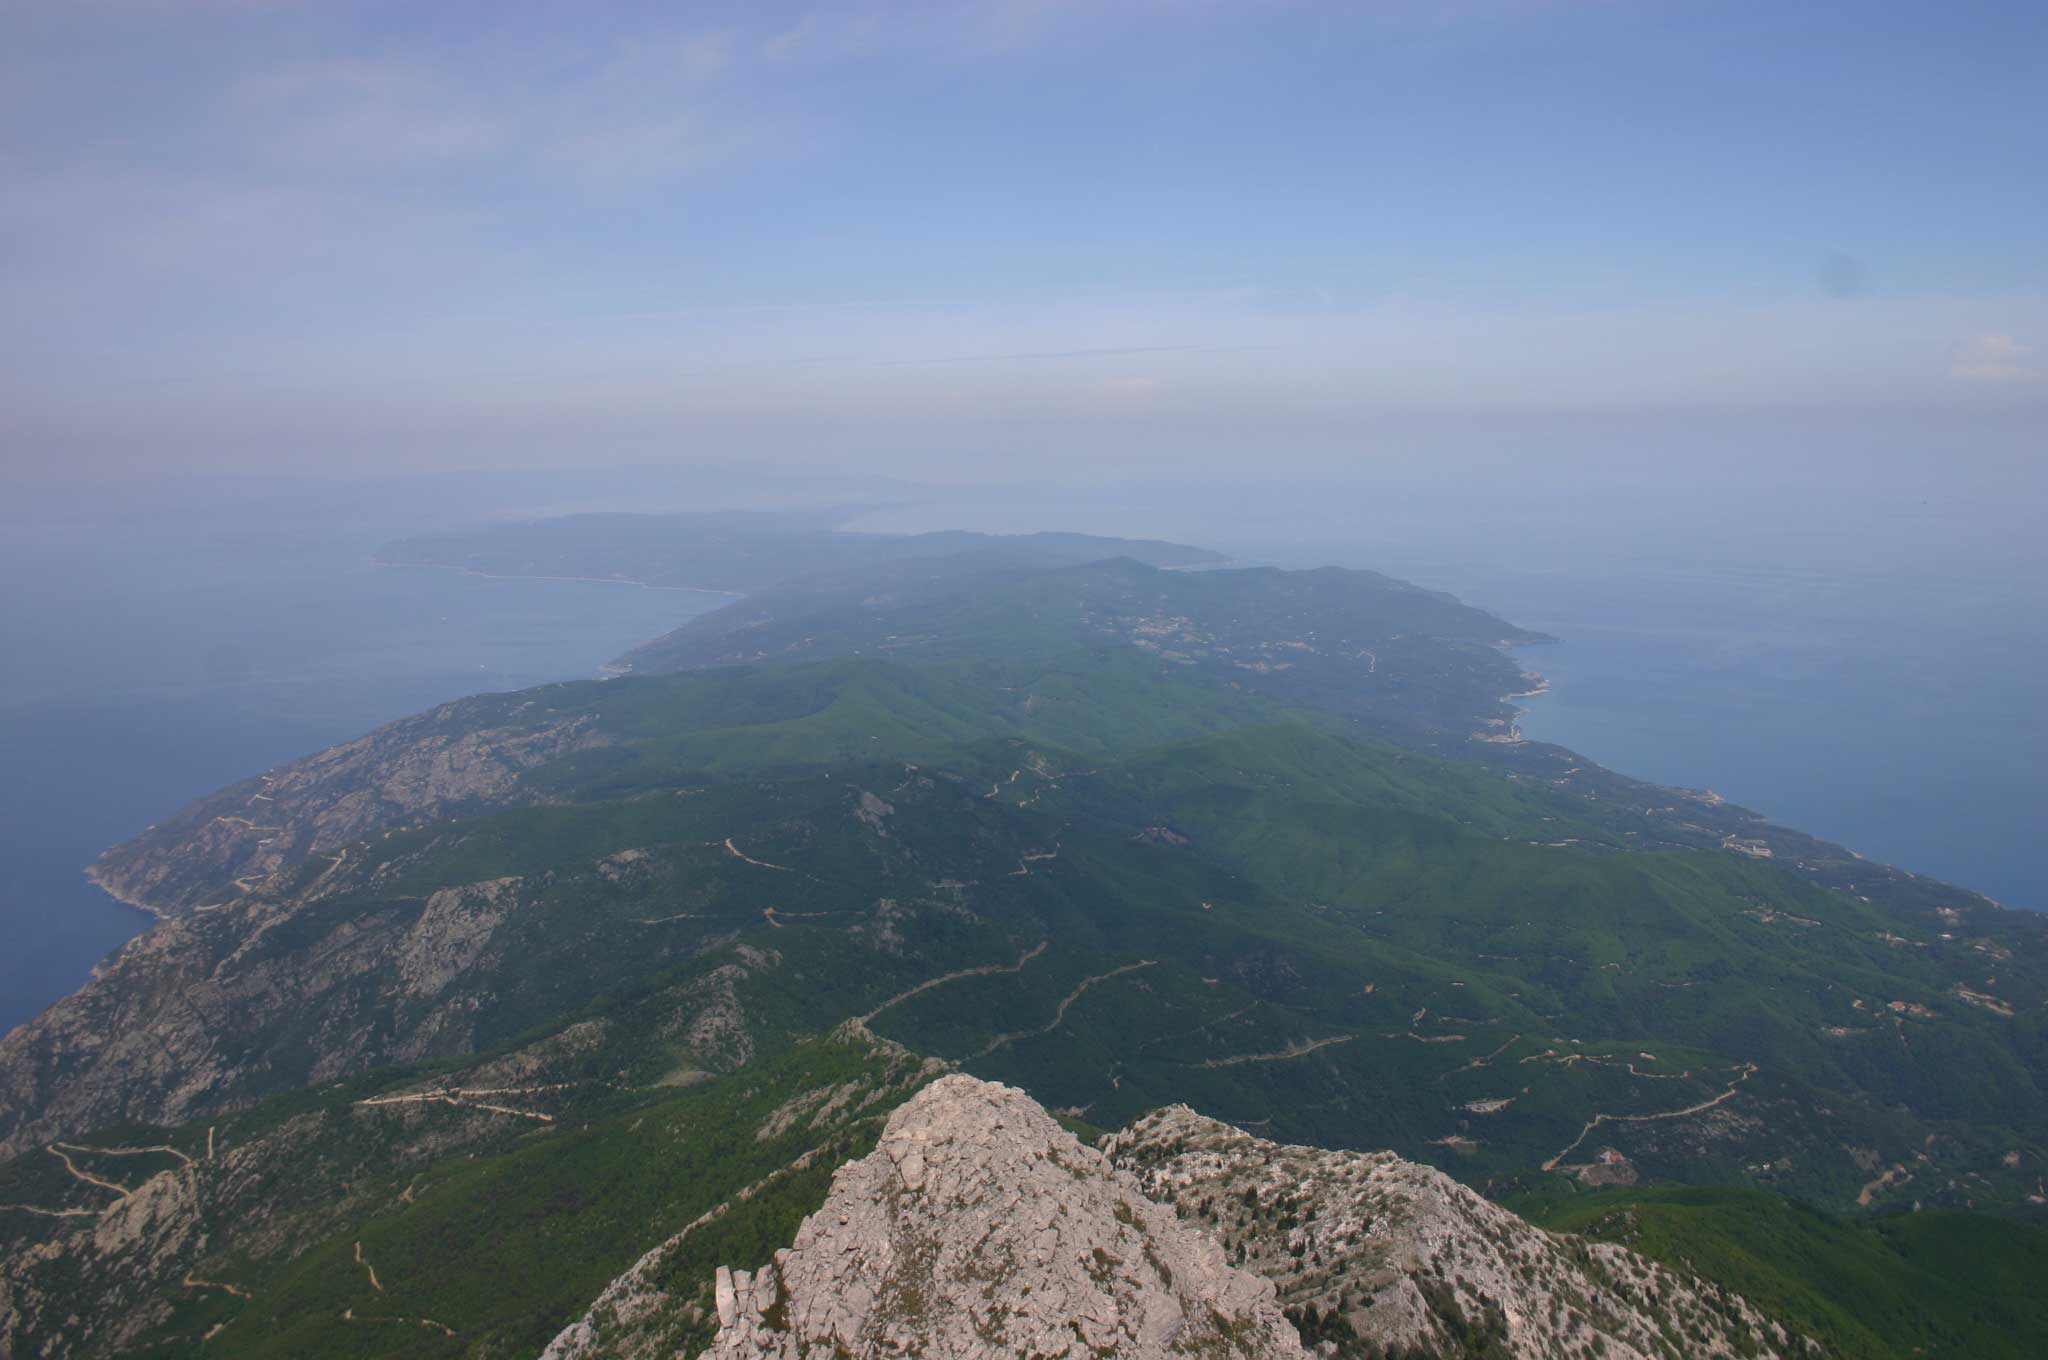 Mt Athos - Along the Peninsula From Mt Athos - © William Mackesy